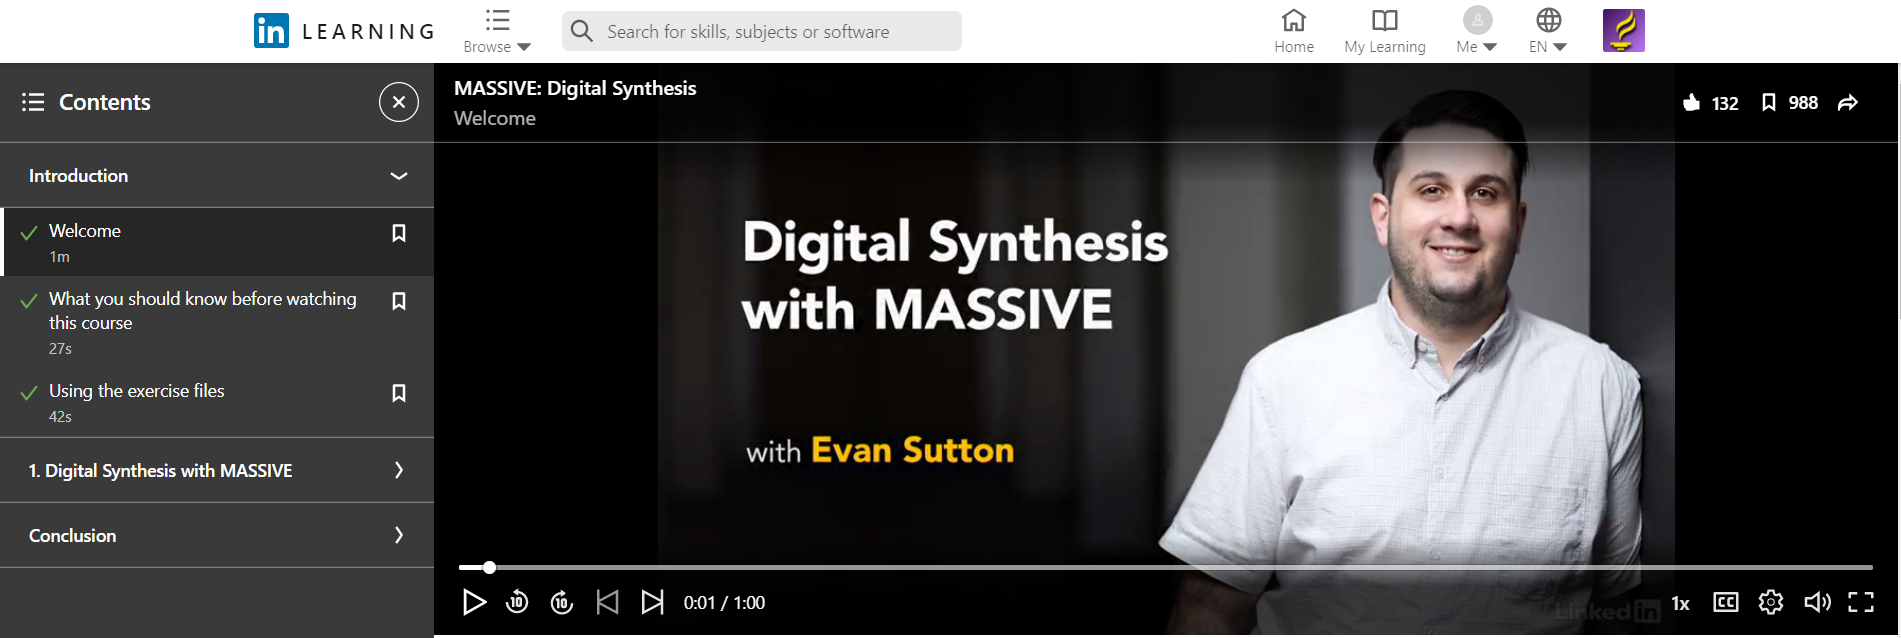 Digital Synthesis Massive